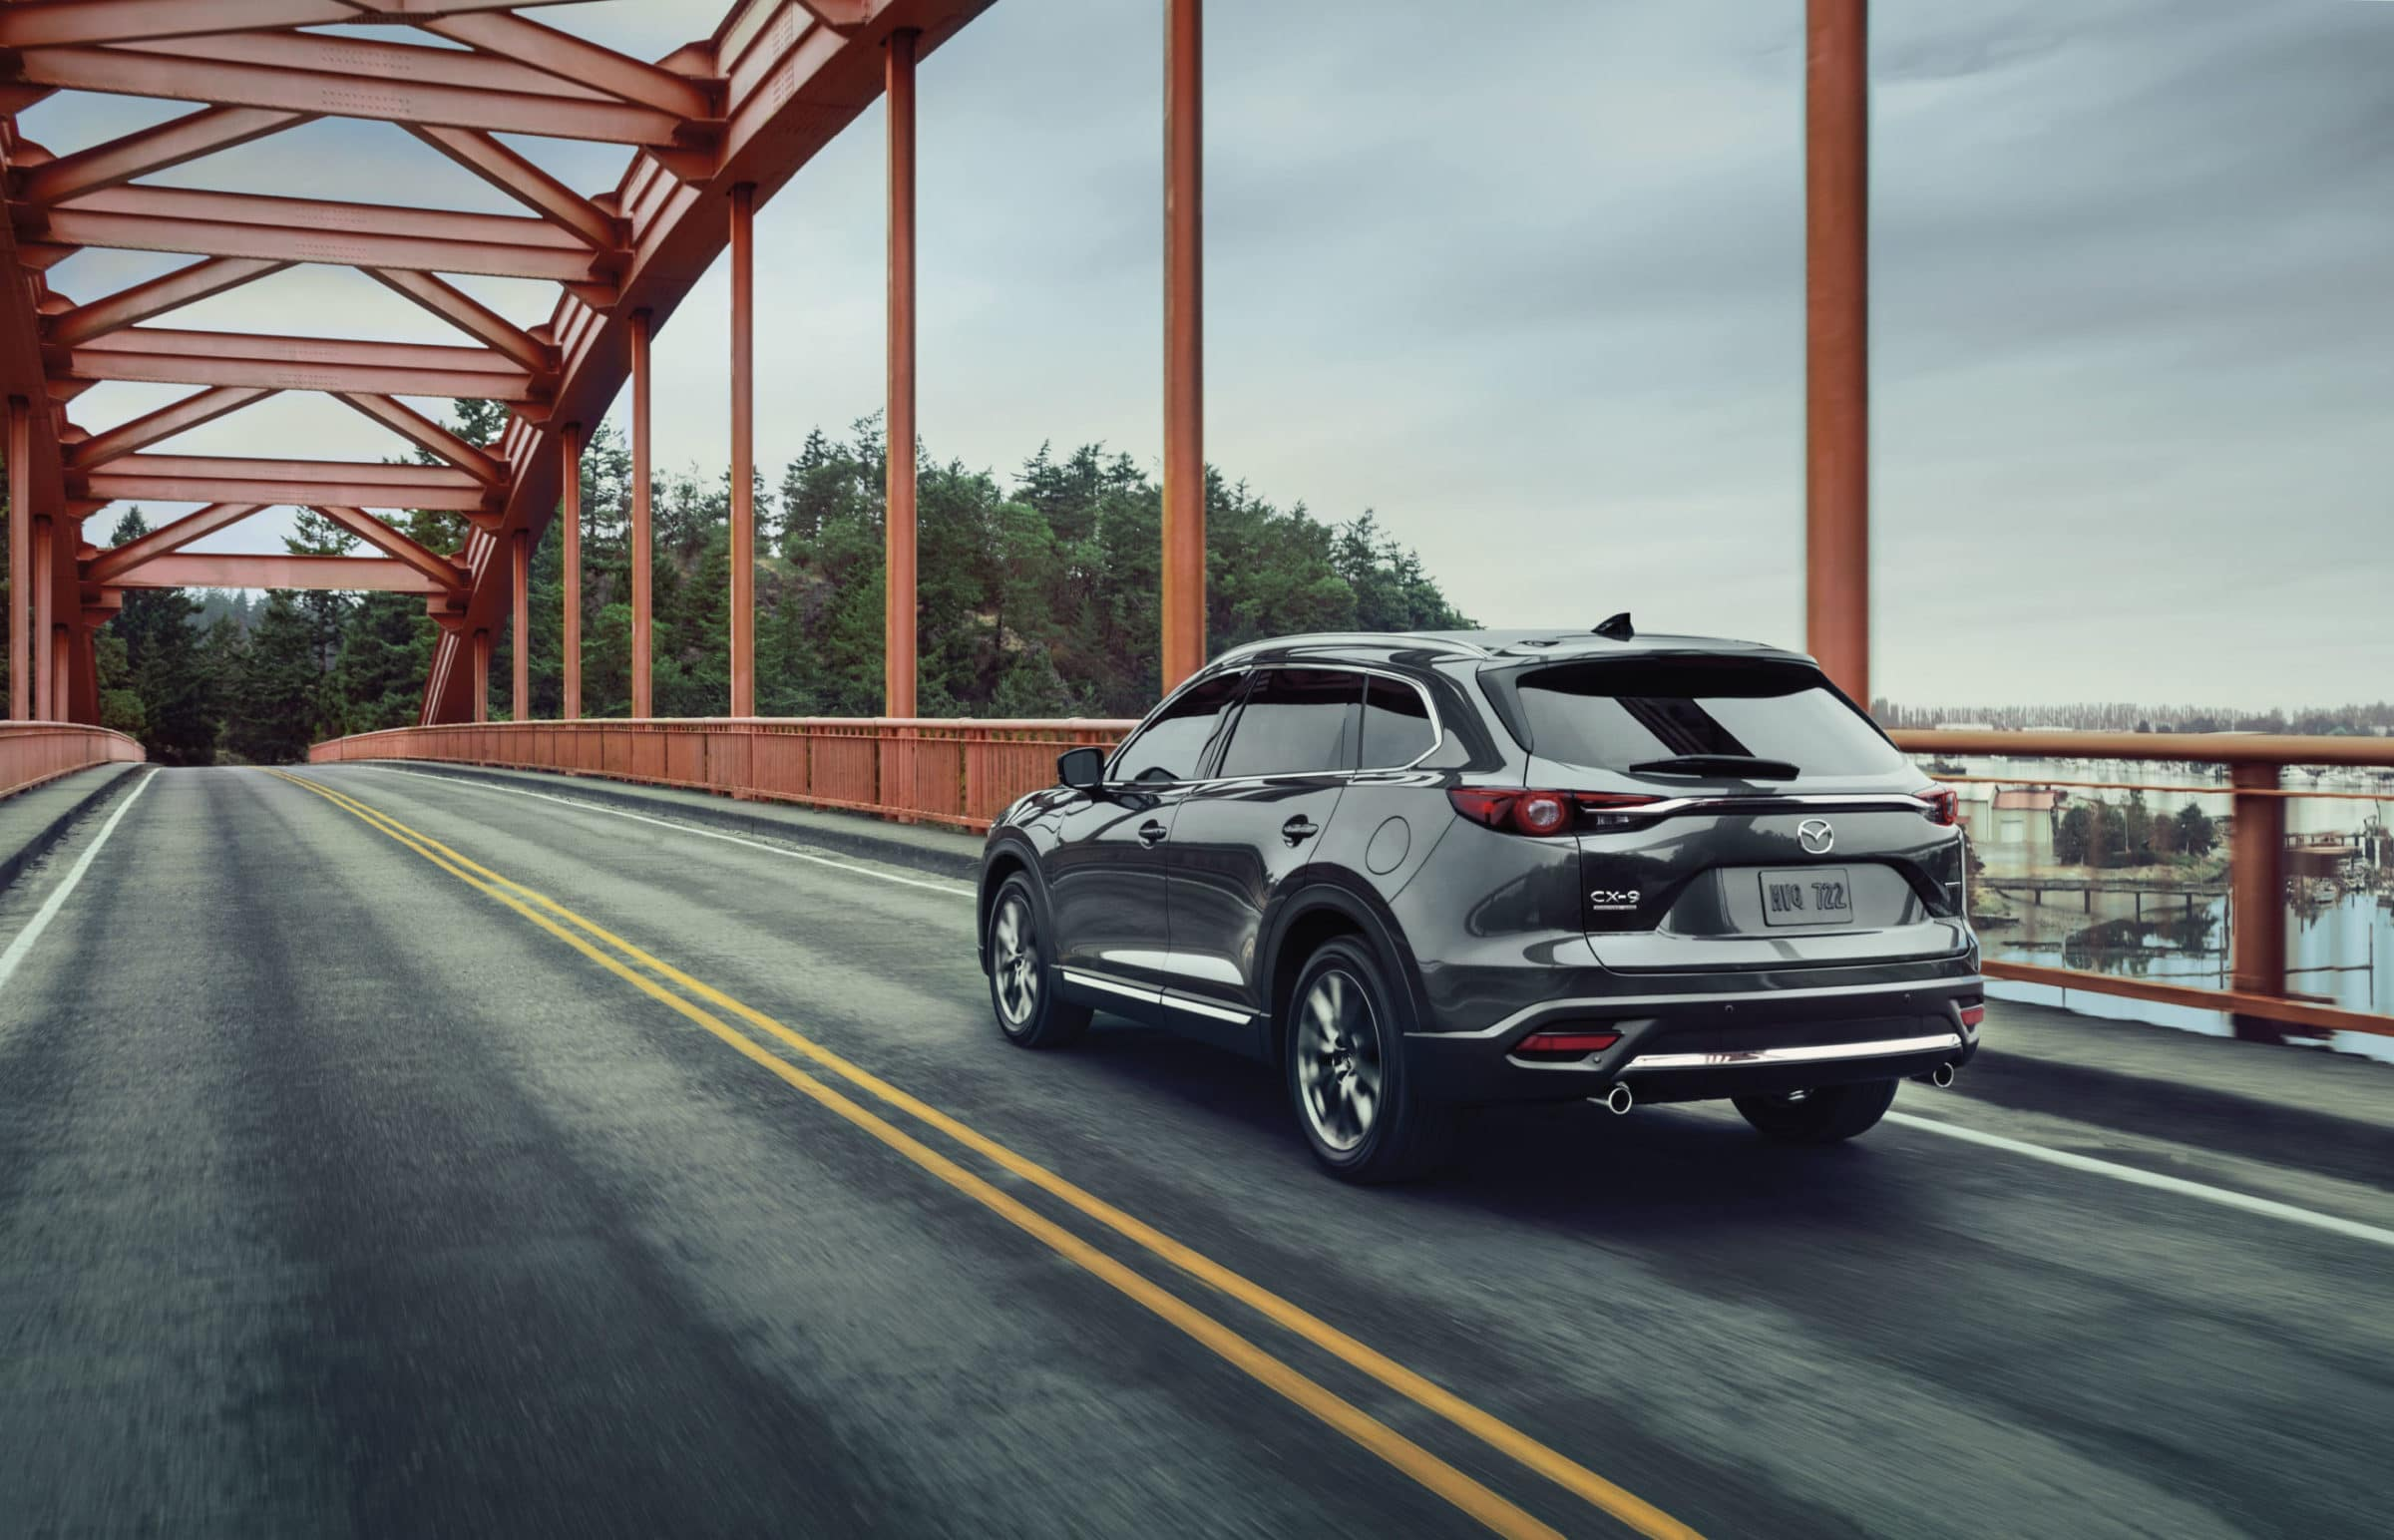 More Power in the 2020 Mazda CX-9